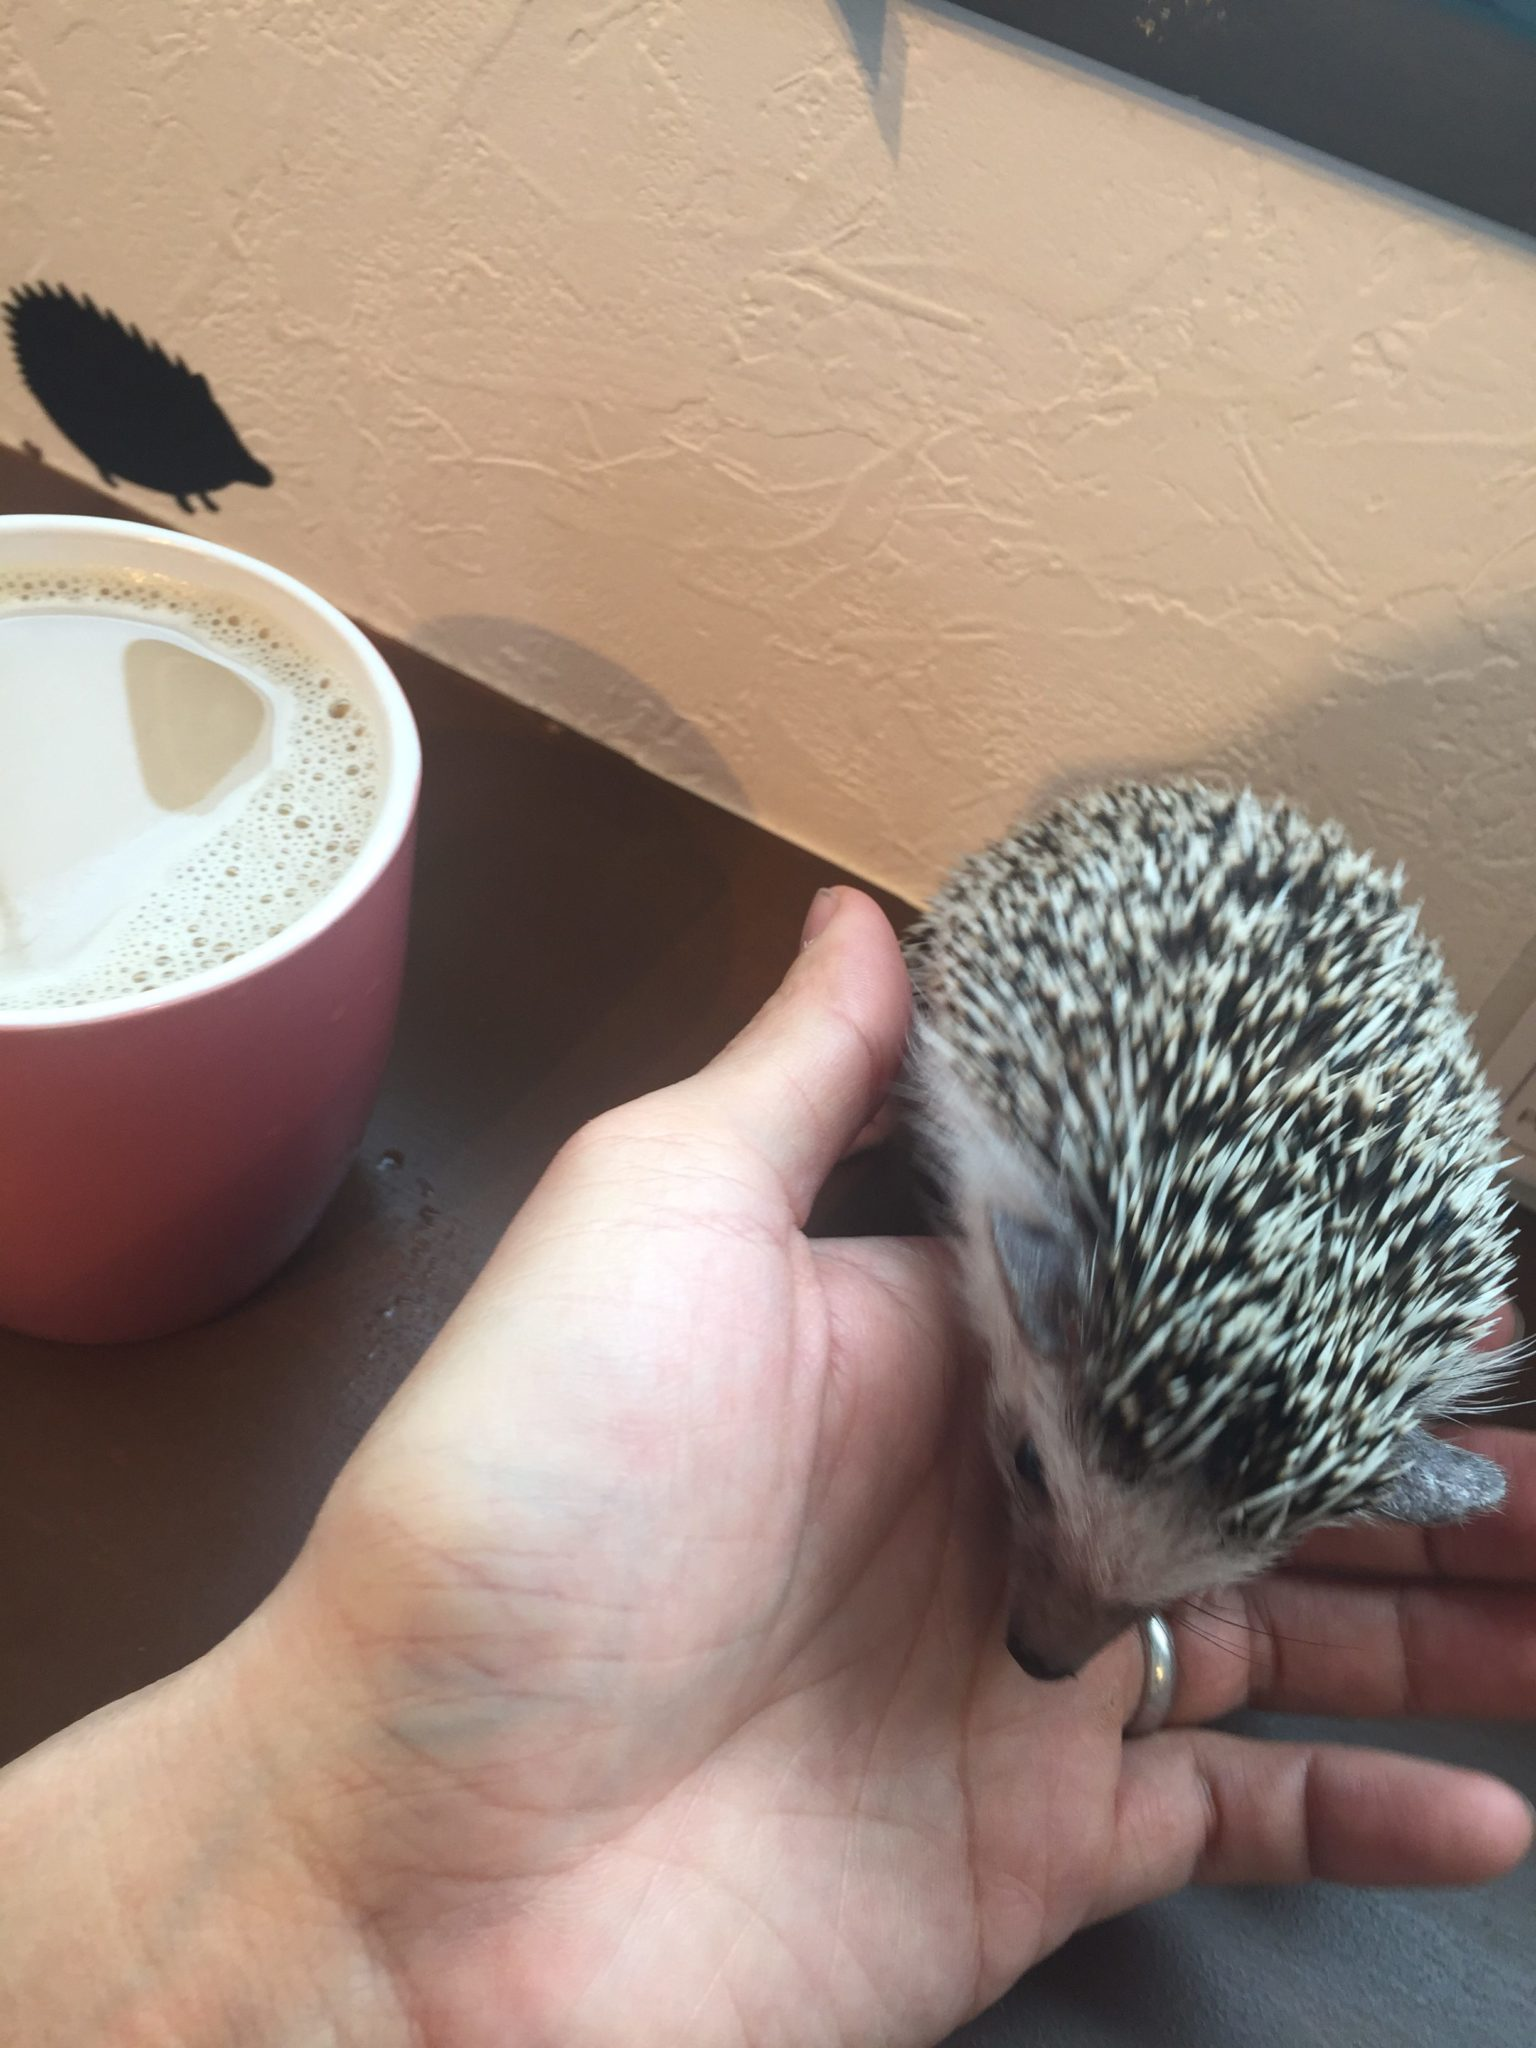 Harry hedgehog cafe - pokey and Halef